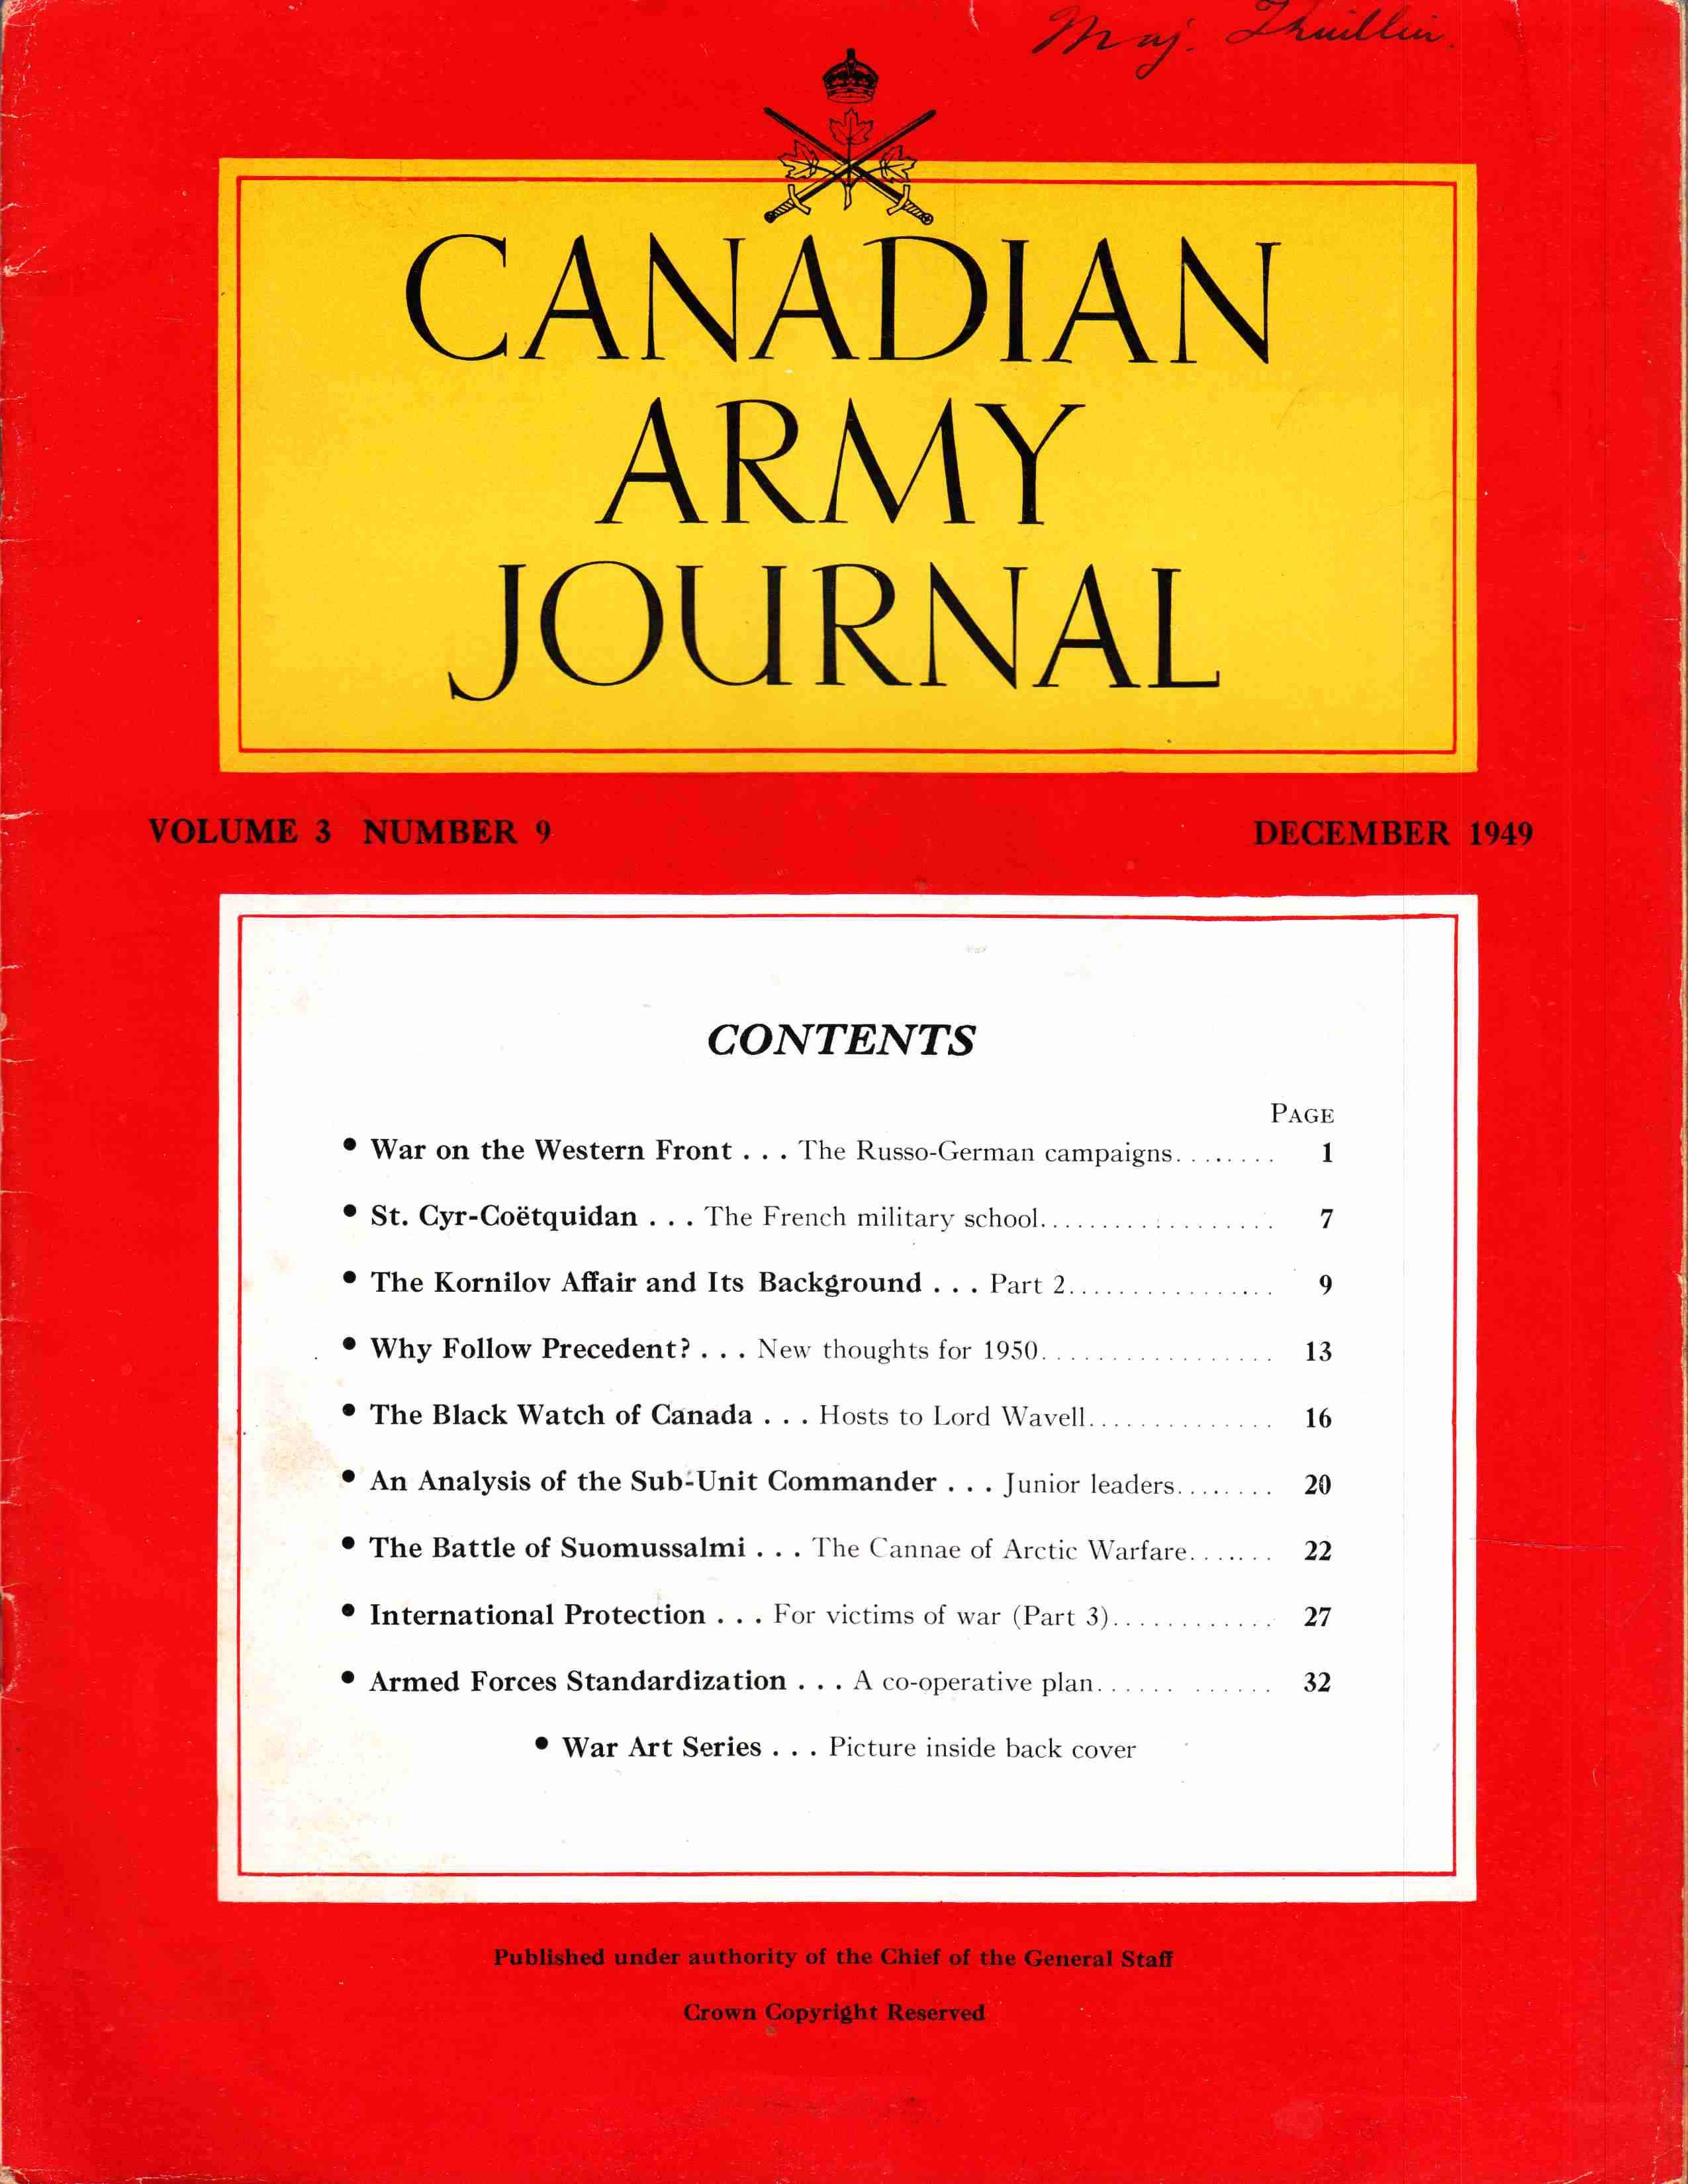 Image for Canadian Army Journal Volume 3 Number 9 December 1949